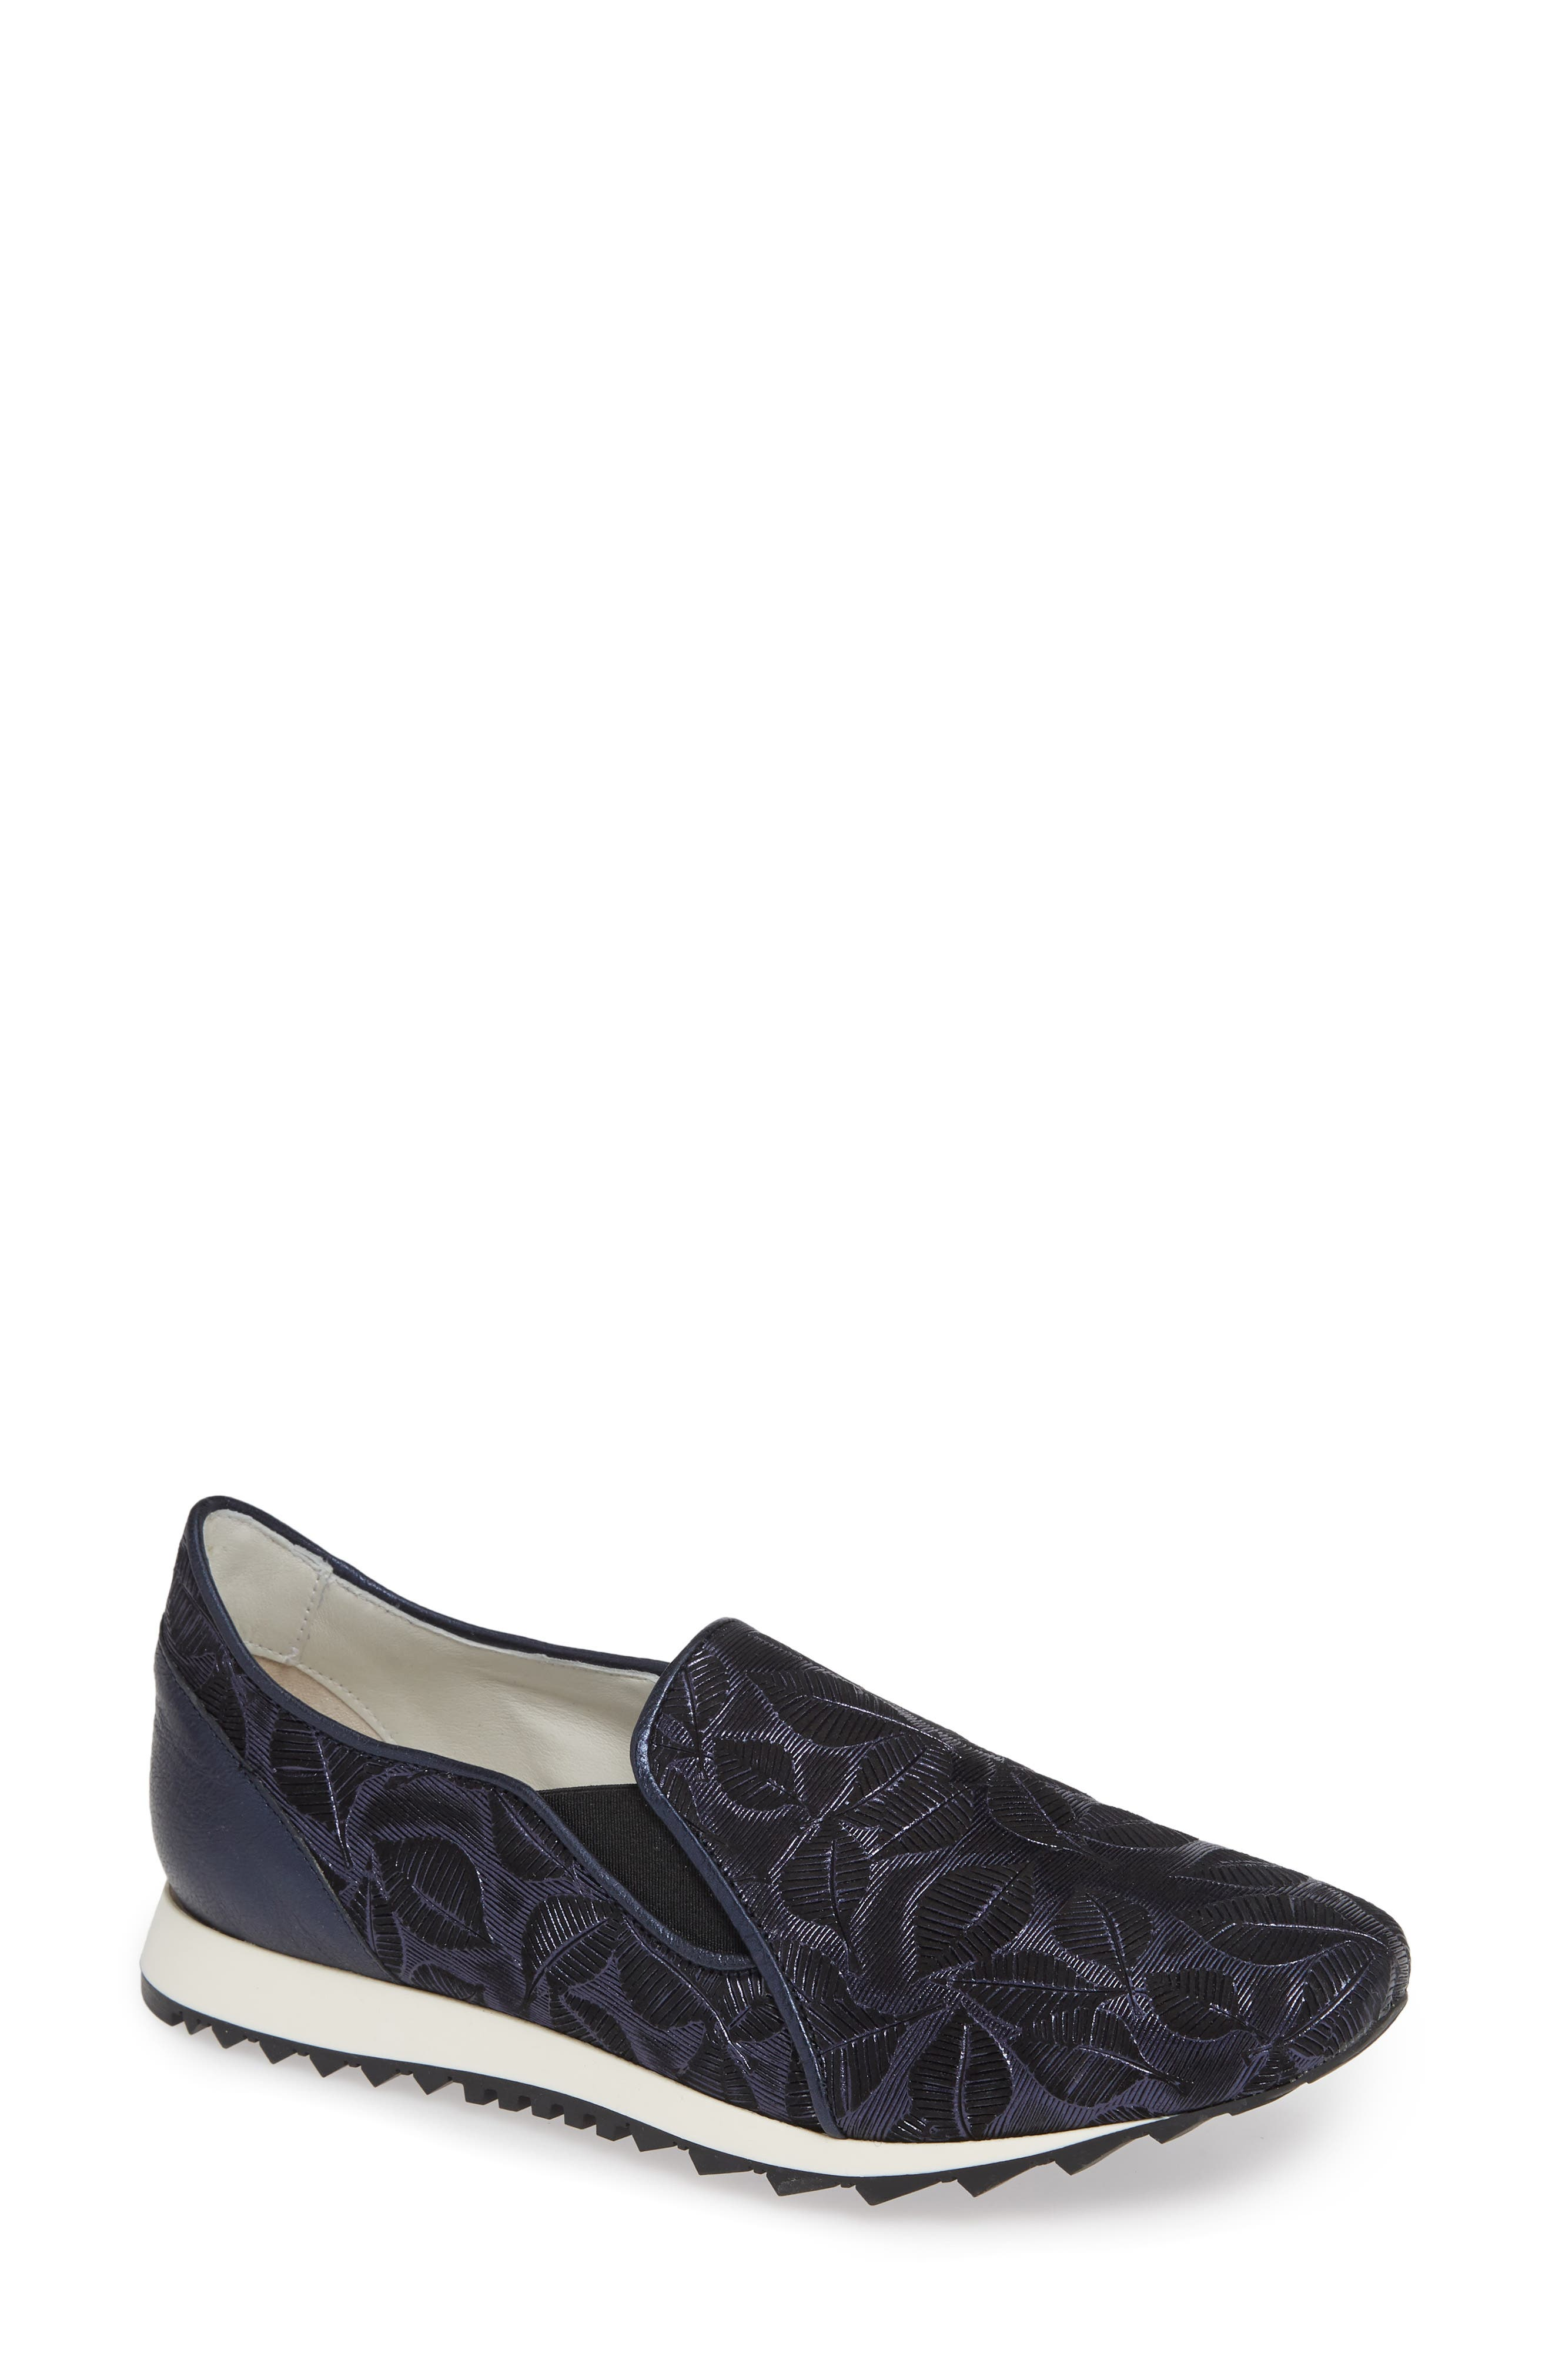 A mesmerizing leaf pattern and a little bit of shimmer update a sporty slip-on sneaker with a tread sole and comfort footbed. Style Name: Amalfi By Rangoni Francia Slip-On Sneaker (Women). Style Number: 5683827. Available in stores.